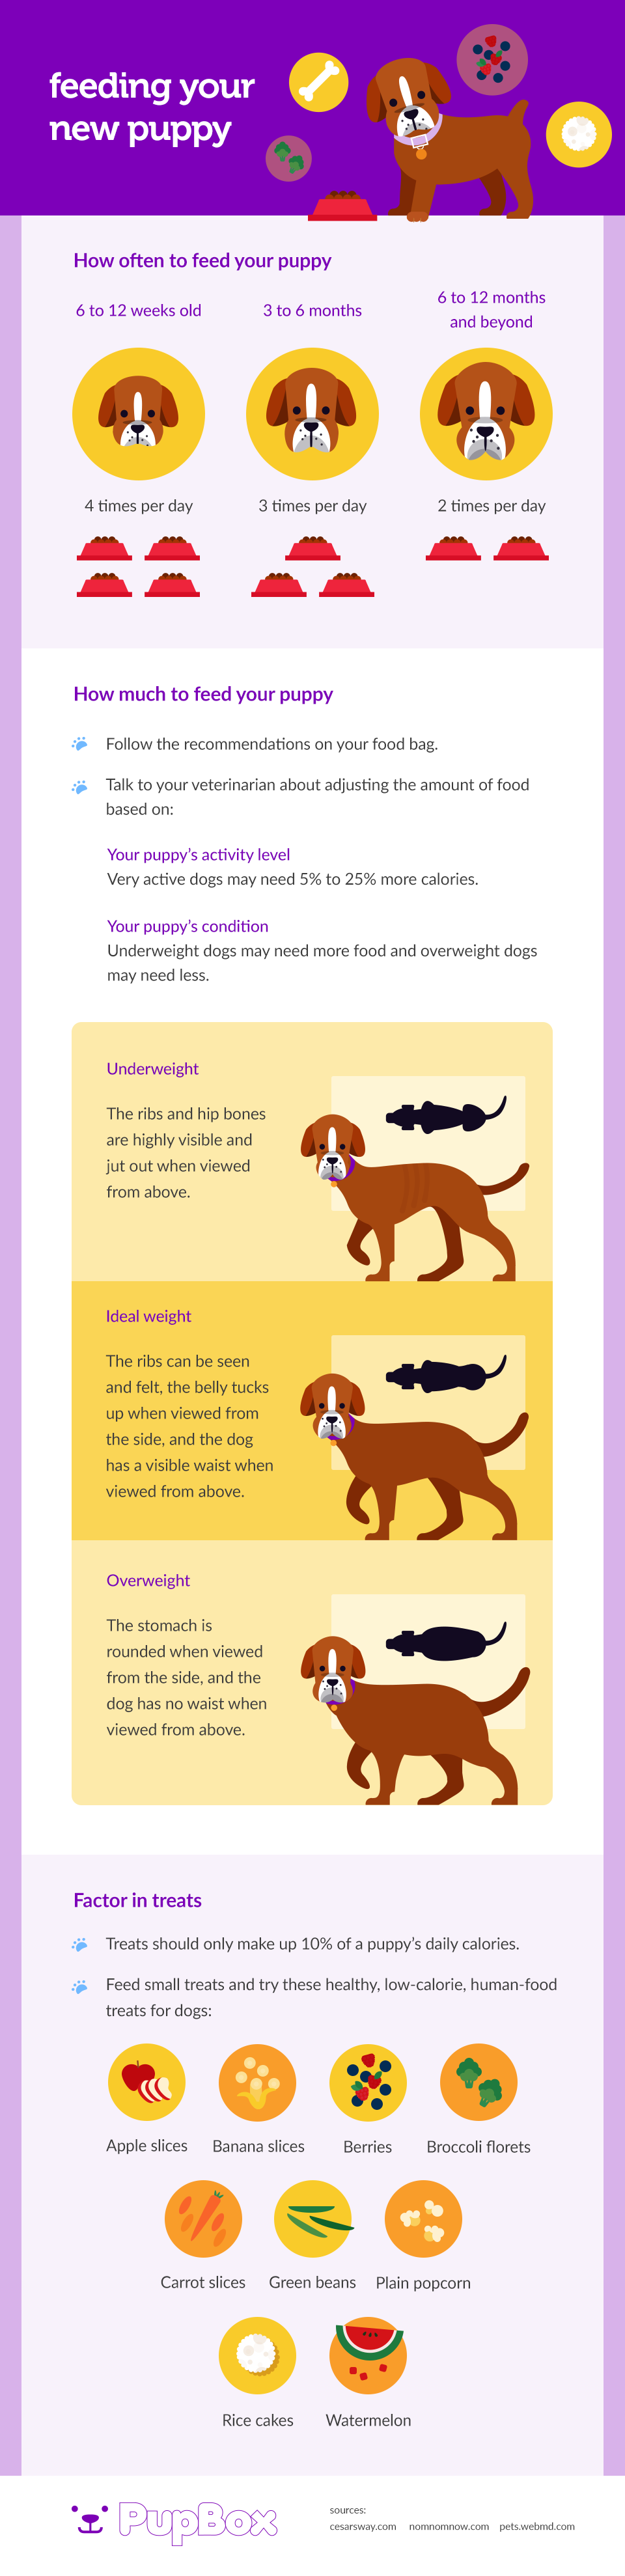 Feeding your new puppy - Pupbox.com infographic